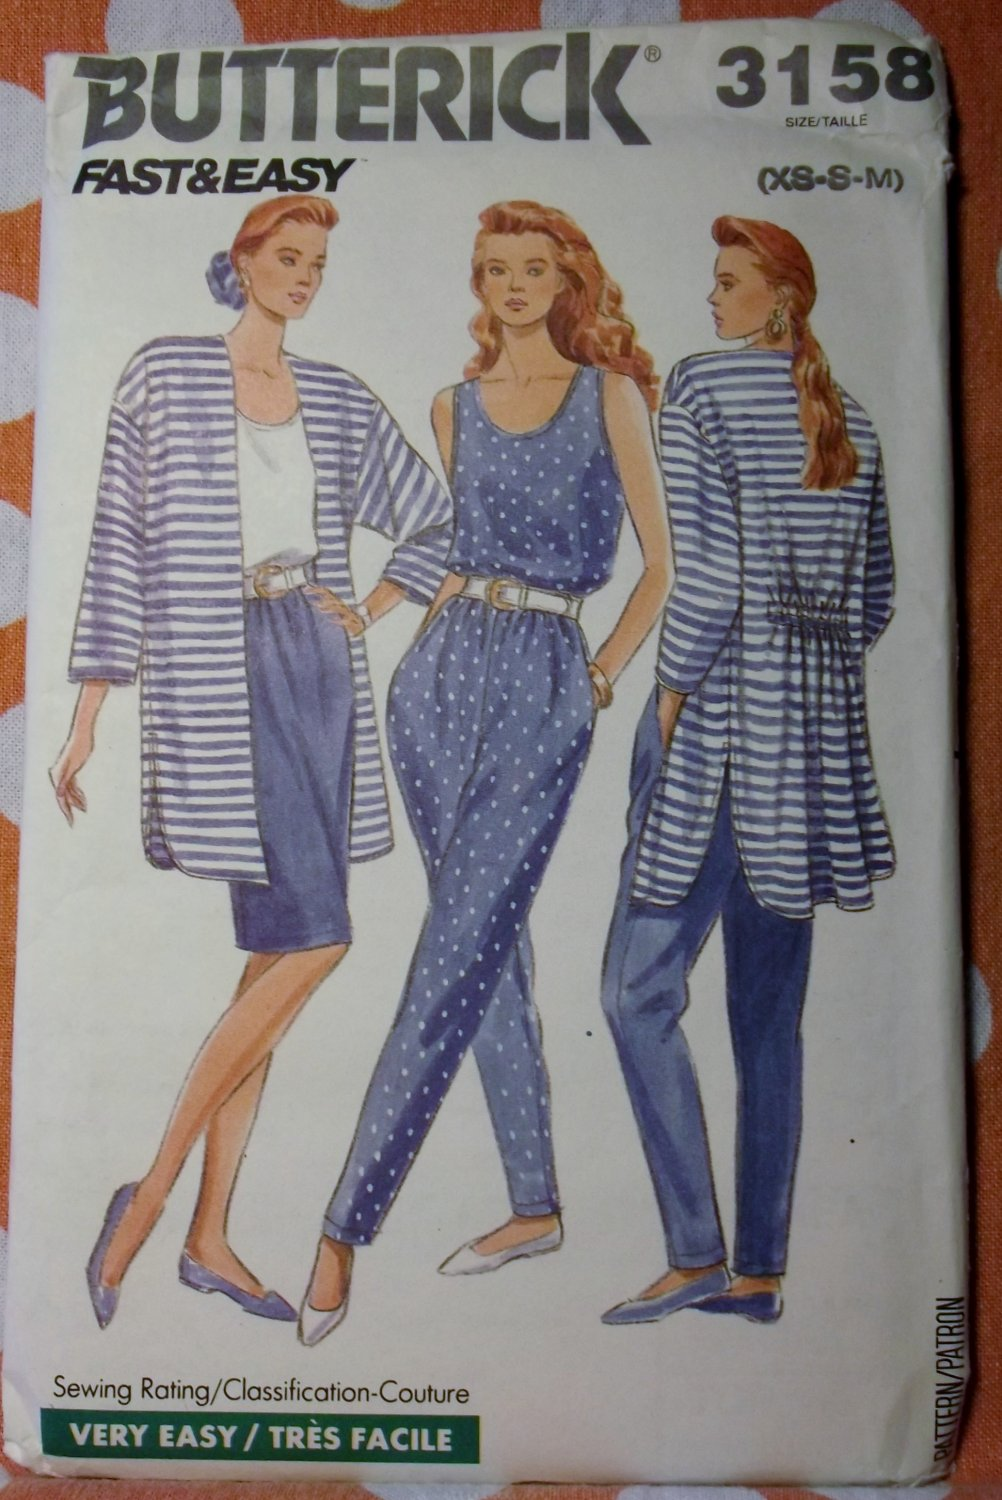 Butterick 3158 Sewing Pattern, Misses Jacket Skirt Pants, Size XS to Med, UNCUT